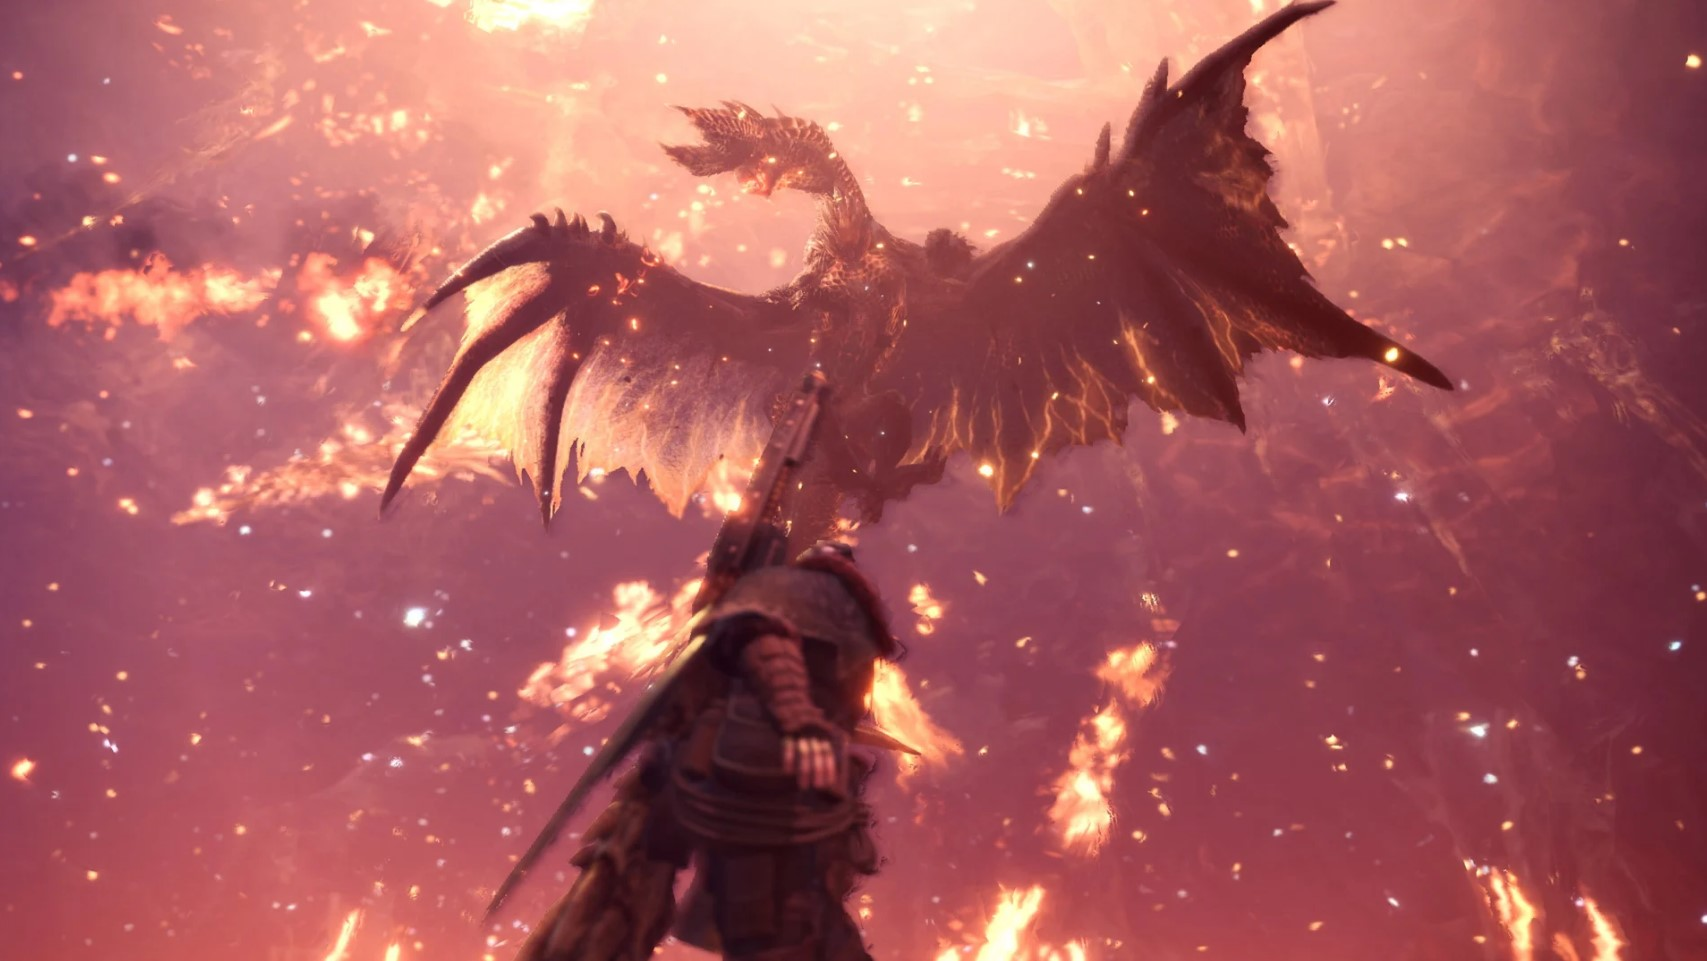 Monster Hunter World: Iceborne update adds seasonal events and more